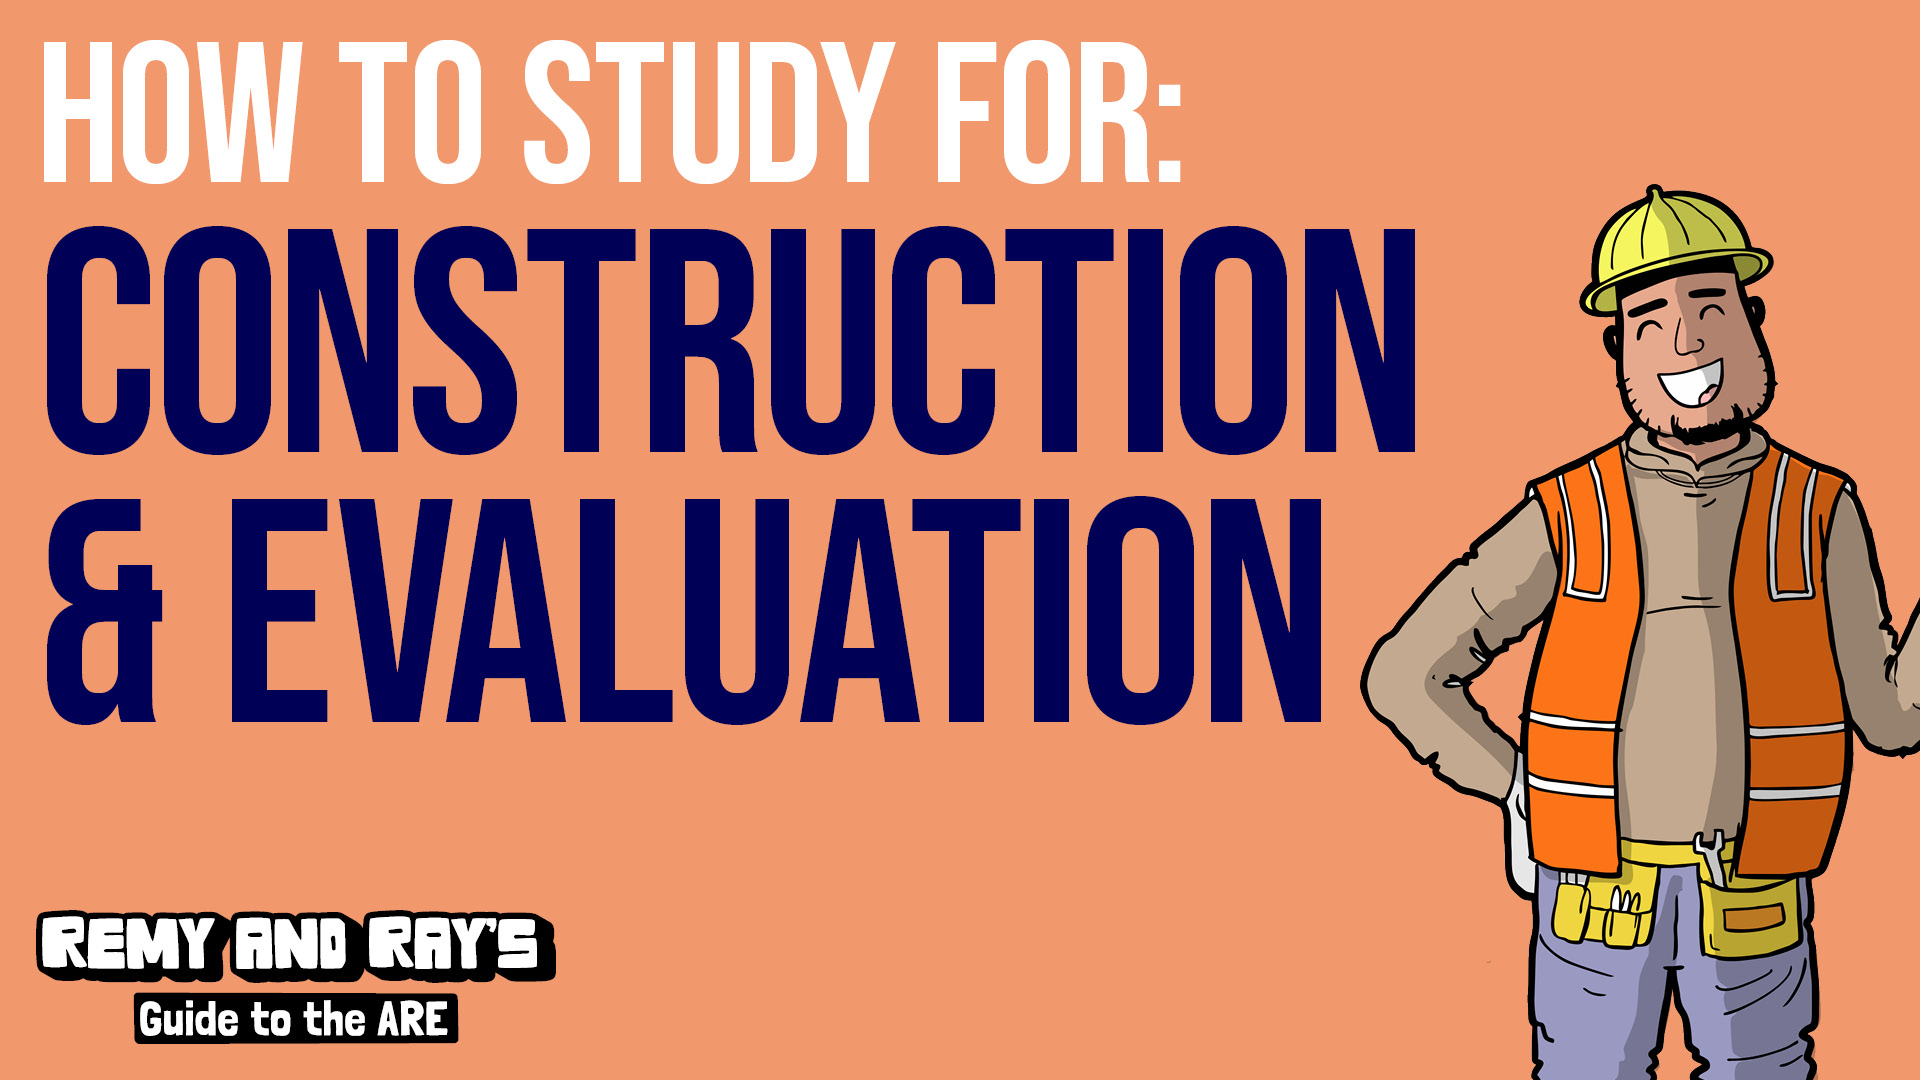 How to study for the Construction and Evaluation division of the ARE